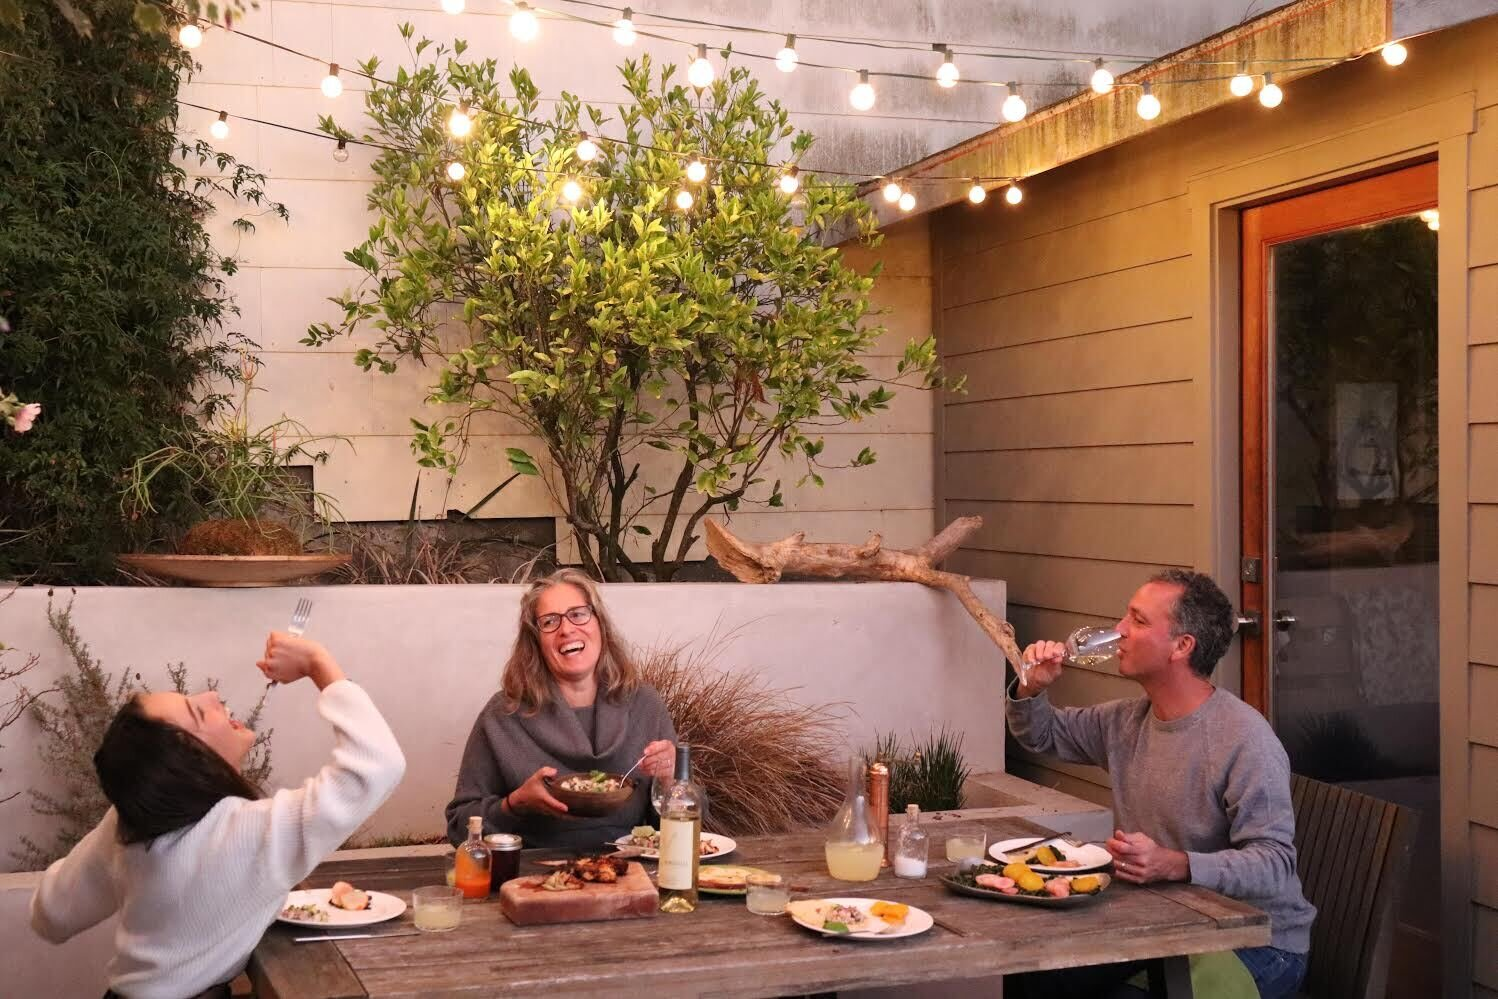 For principal and cofounder of Red Dot Studio Karen Curtiss, backyard dinners have become an important part of the family routine. She shares a silly moment with her daughter, Karen, and her husband, Mark.   Photo 8 of 10 in 10 Designers and Architects Share What They're Most Thankful for in a Turbulent Year